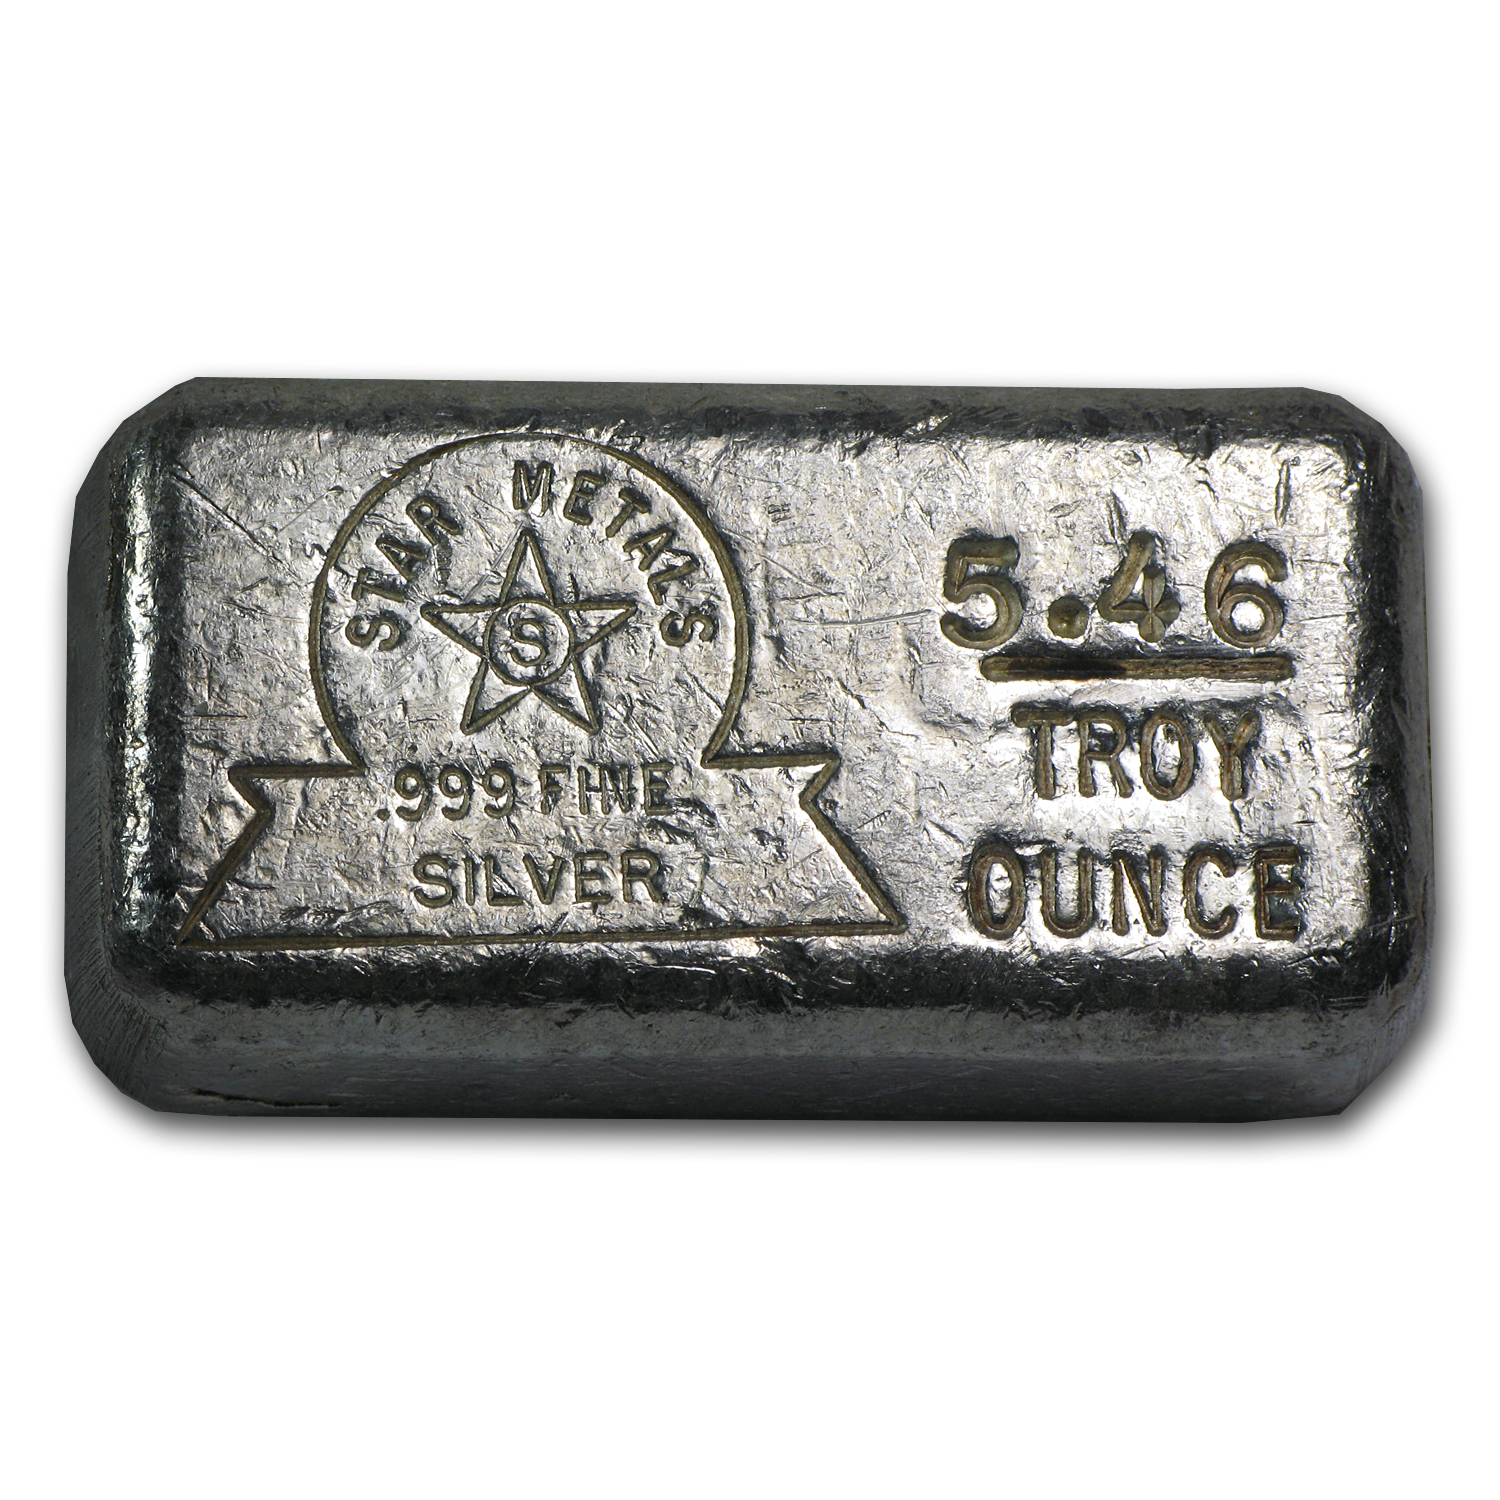 5.46 oz Silver Bar - Star Metals